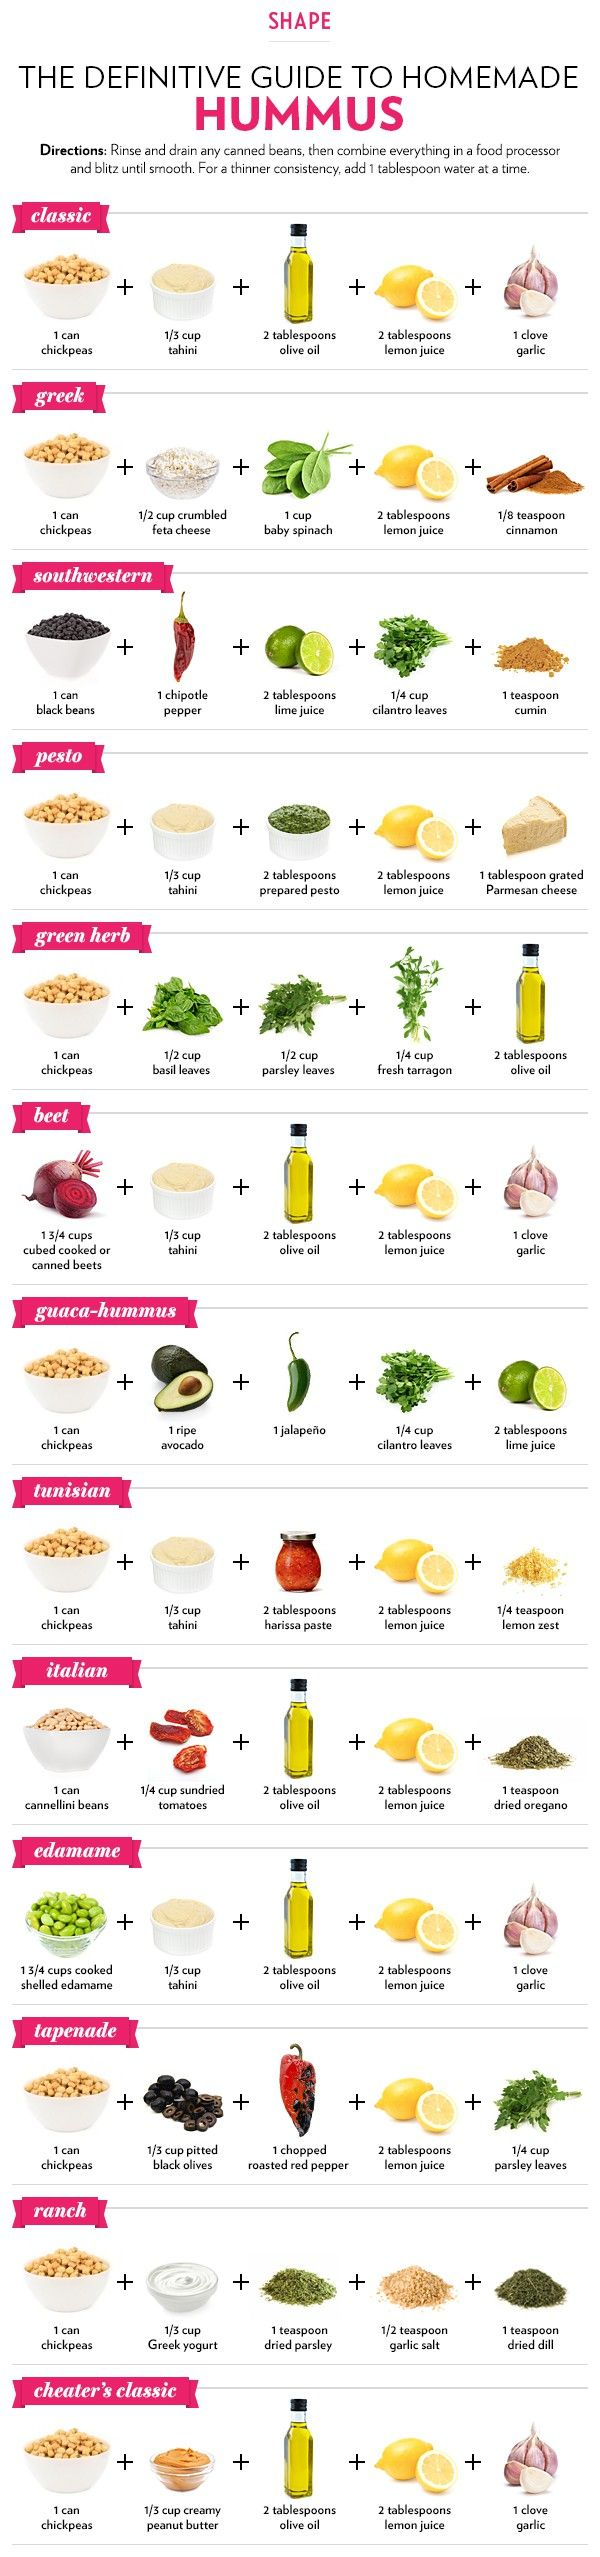 The Ultimate Guide to Hummus! Easy, tasty chart with flavour ideas - most are vegan, and those that aren't are easy to make vegan. ;)